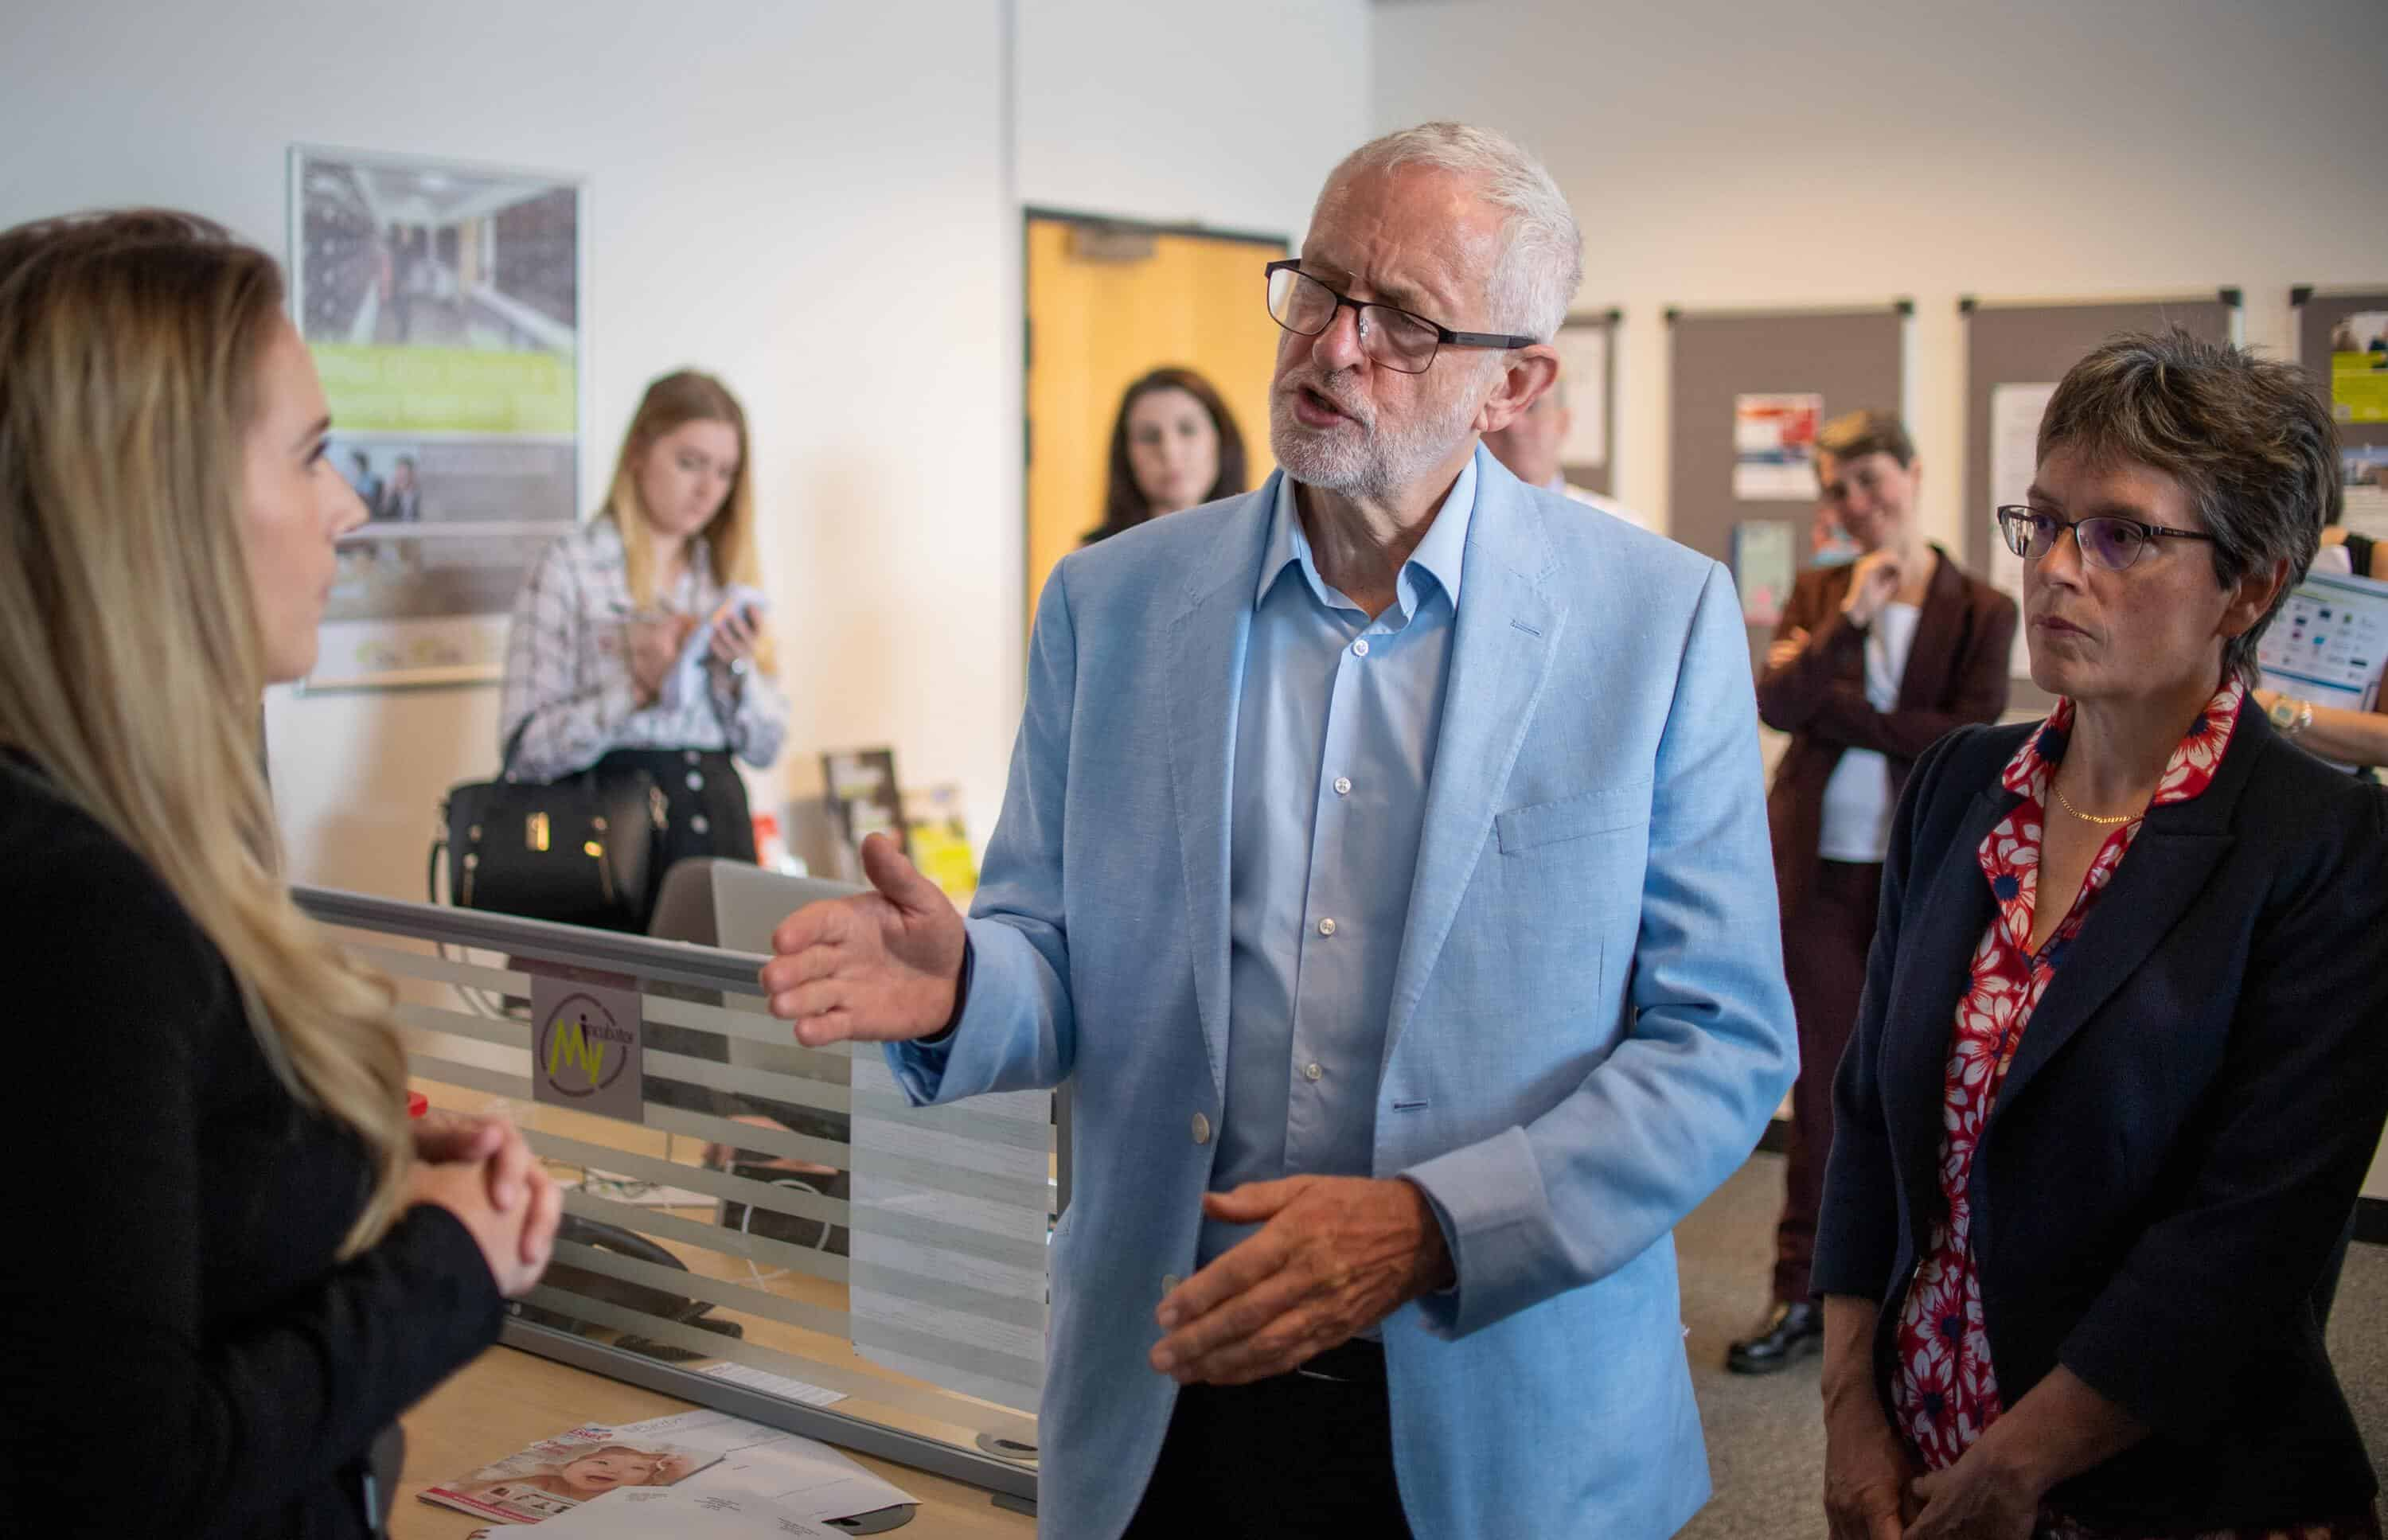 Labour leader Corbyn says will do everything possible to block no